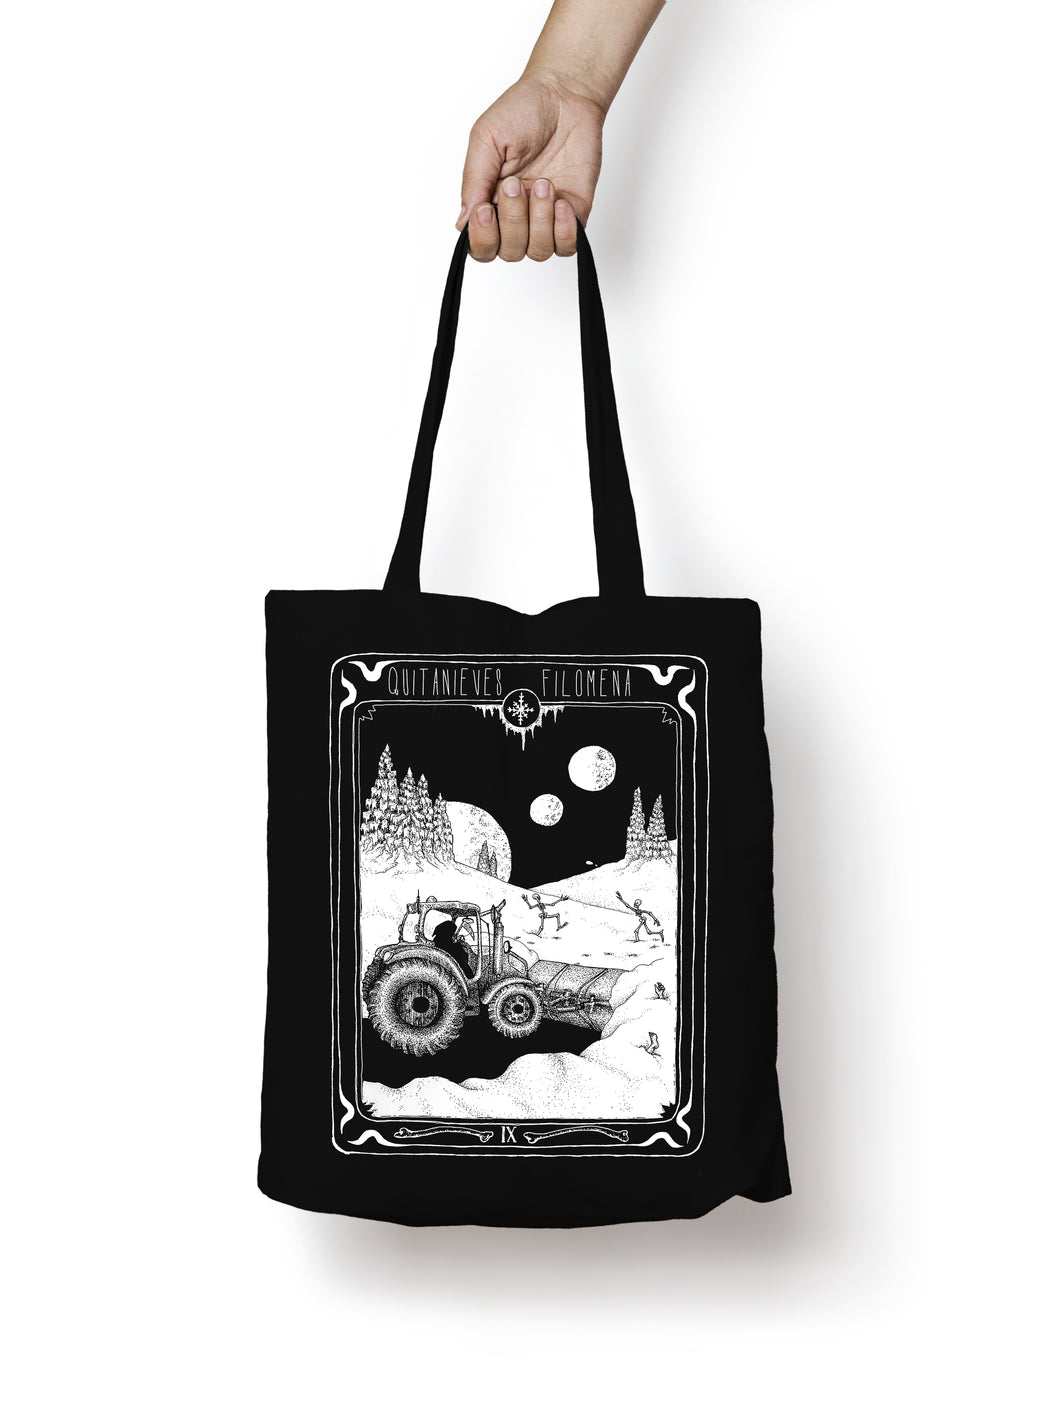 QUITANIEVES FILOMENA - totebag